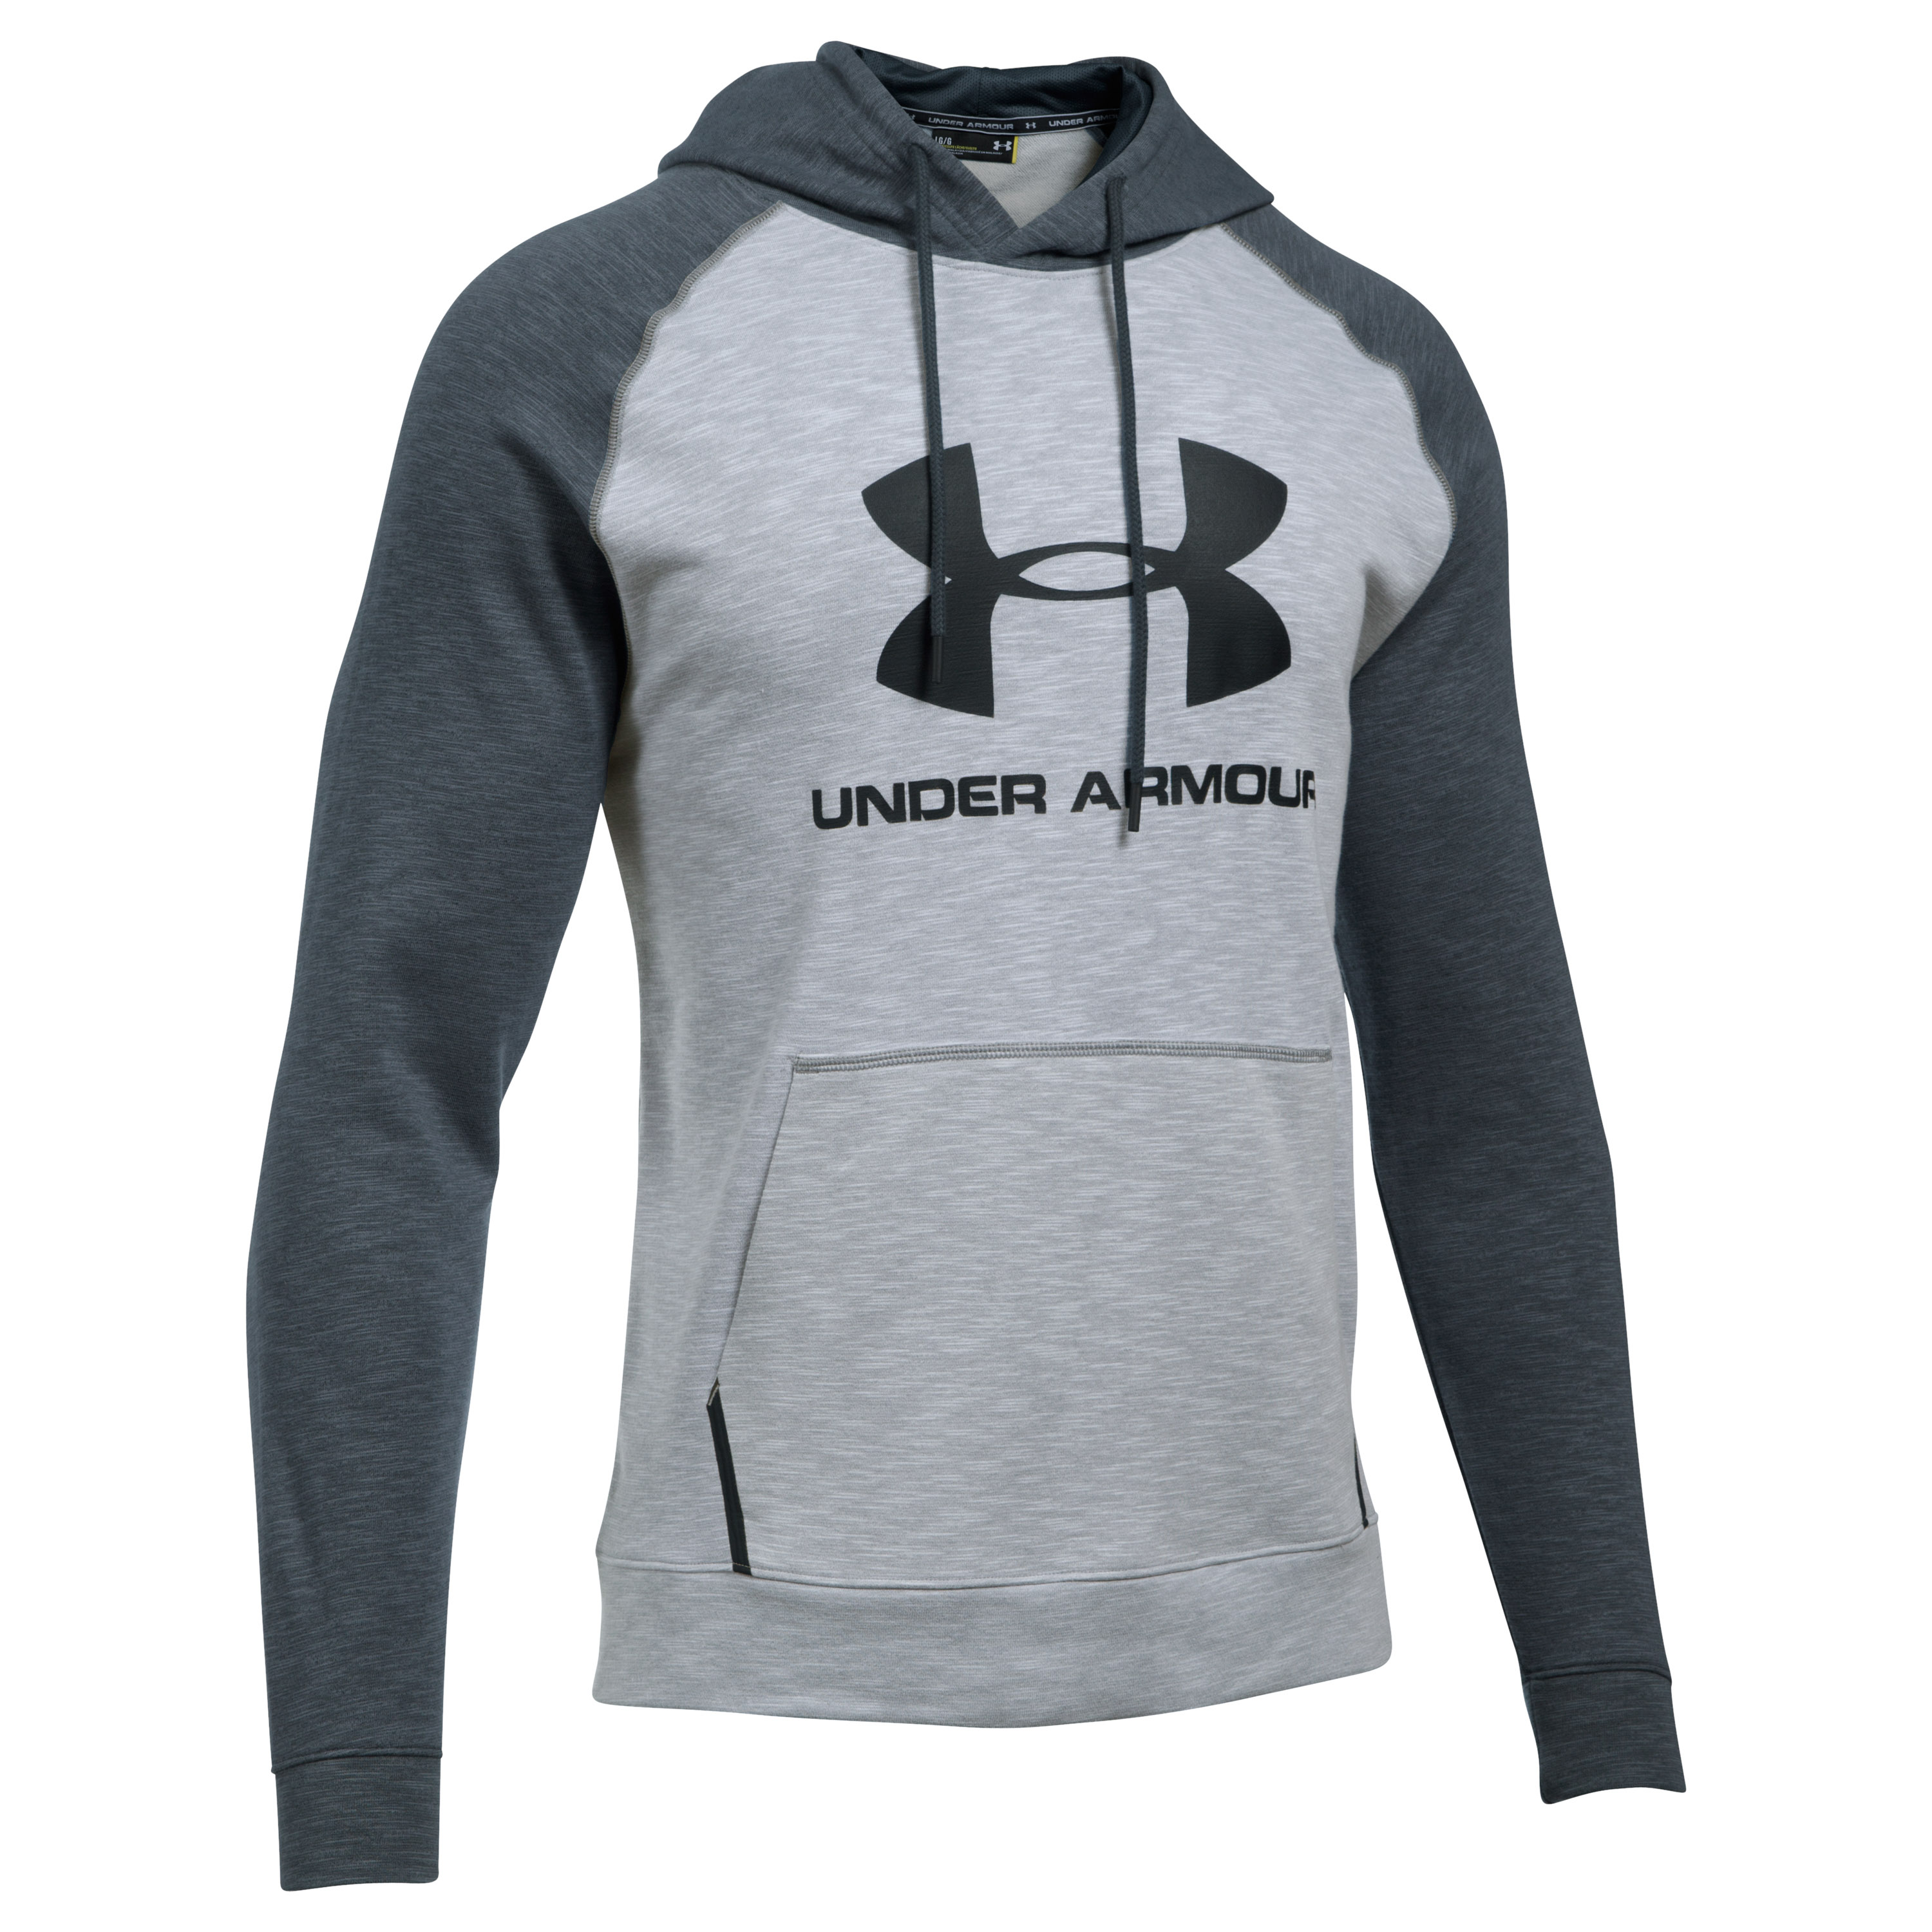 Under Armour Fitness Pullover Hoody Sport Style Triblend light g